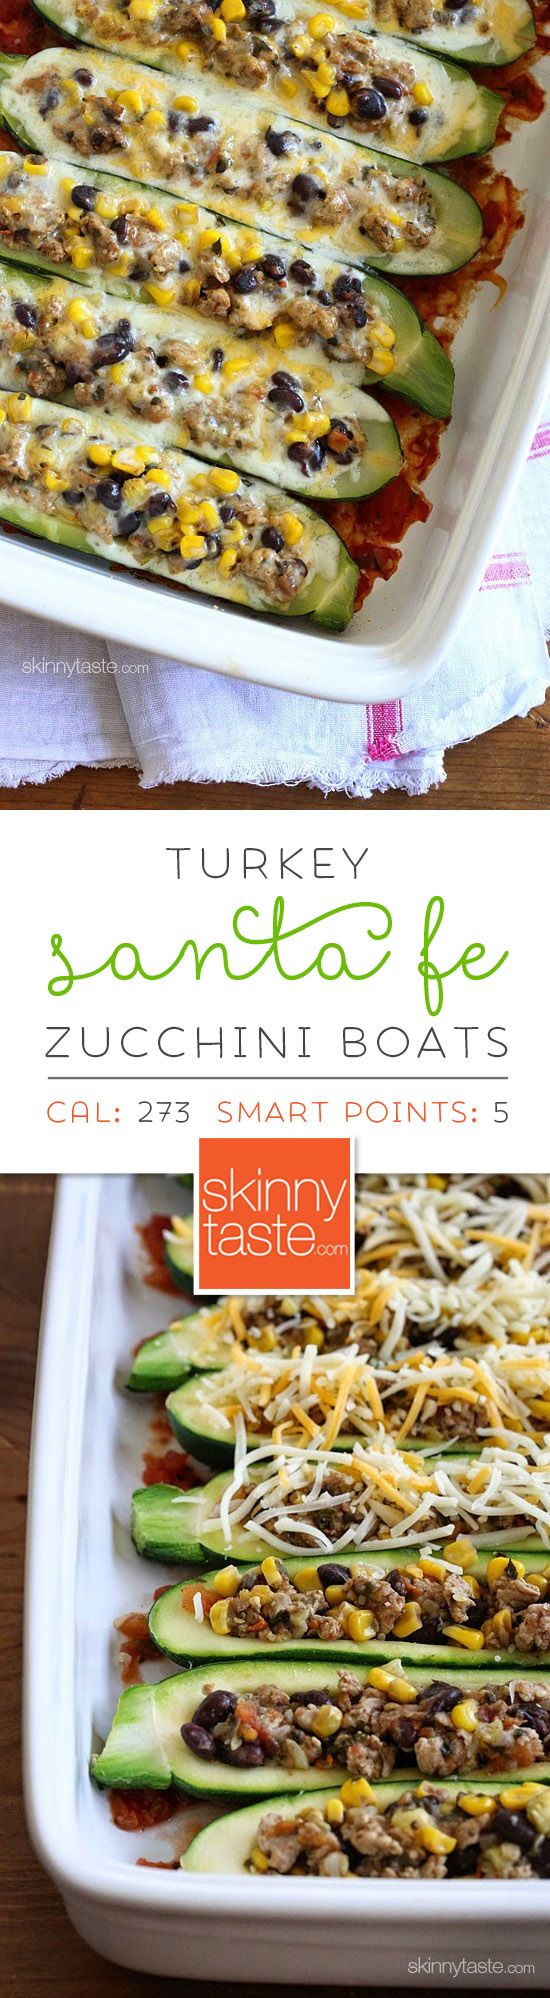 Turkey Santa Fe Zucchini Boats are one of my favorites! Hollowed out zucchini boats stuffed with a cumin spiced ground turkey and black bean mixture with summer corn and tomato, baked in the oven with melted cheese – YUM!